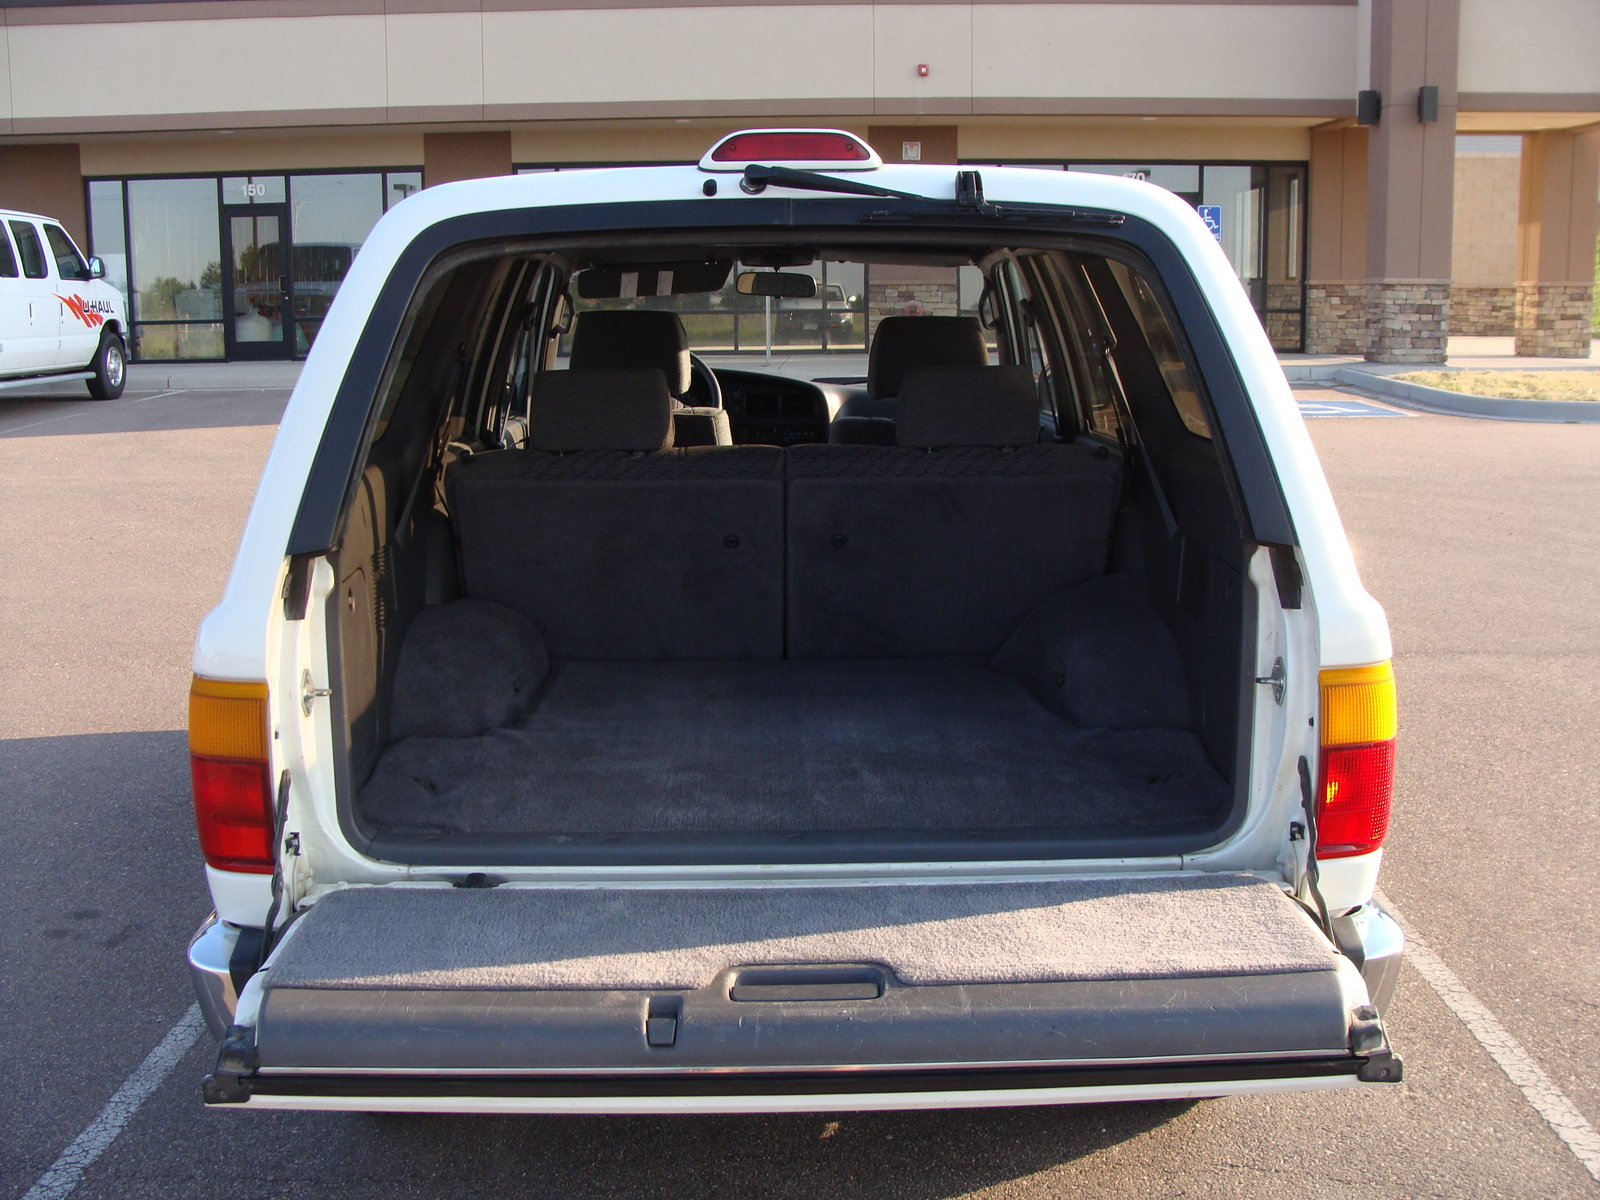 1994 Toyota 4runner Interior Pictures To Pin On Pinterest Pinsdaddy